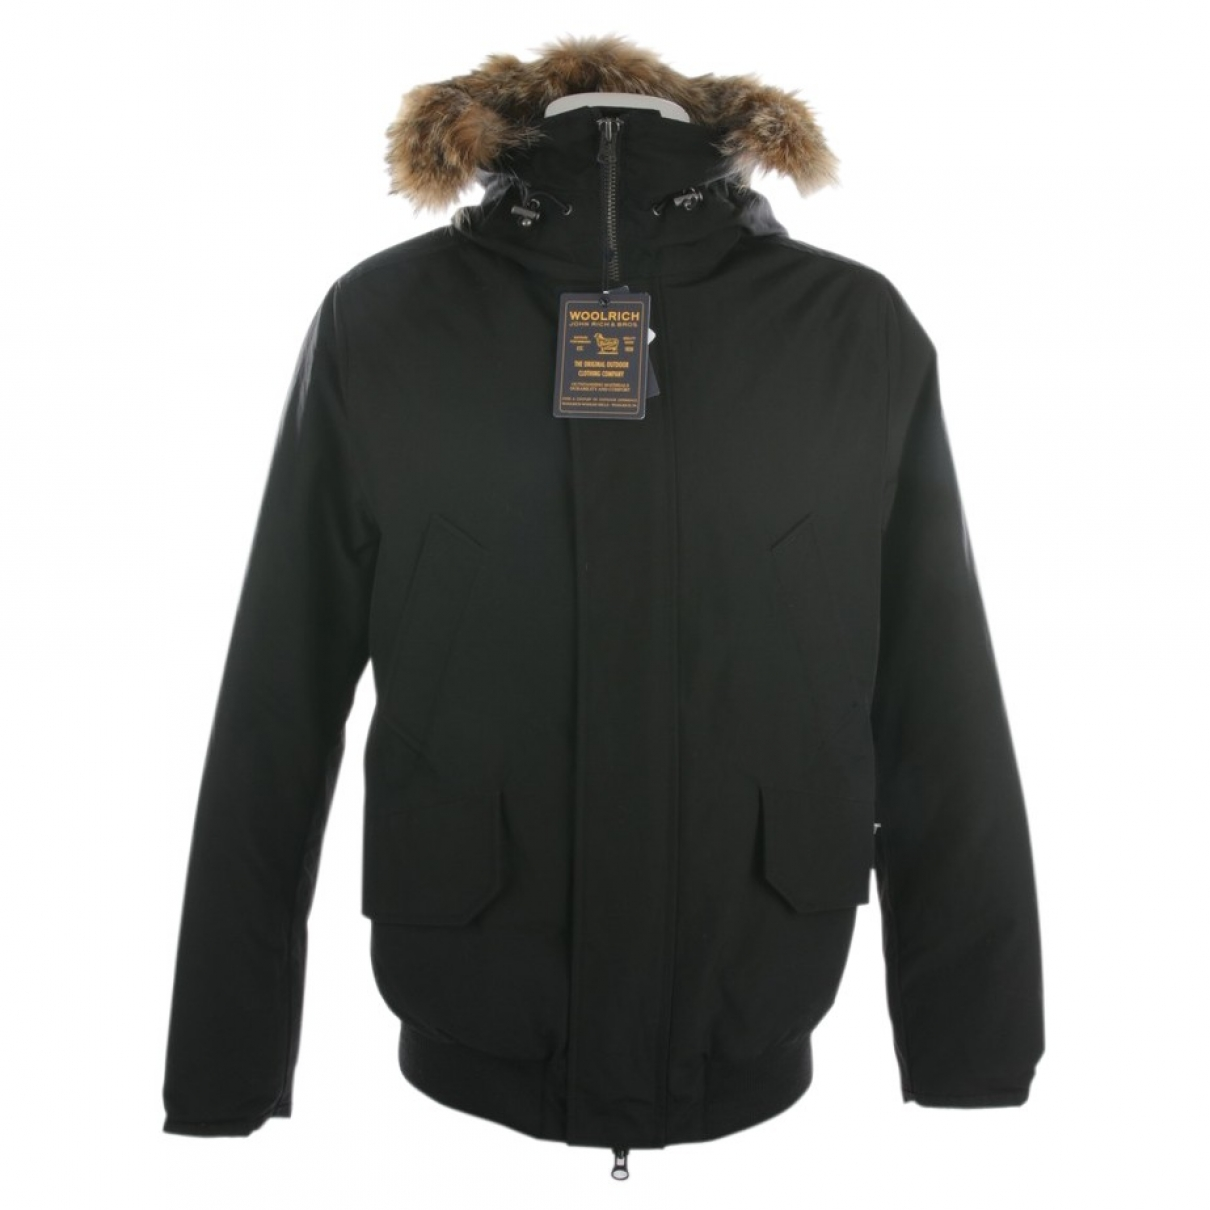 Woolrich \N Black Cotton jacket for Women 38 FR